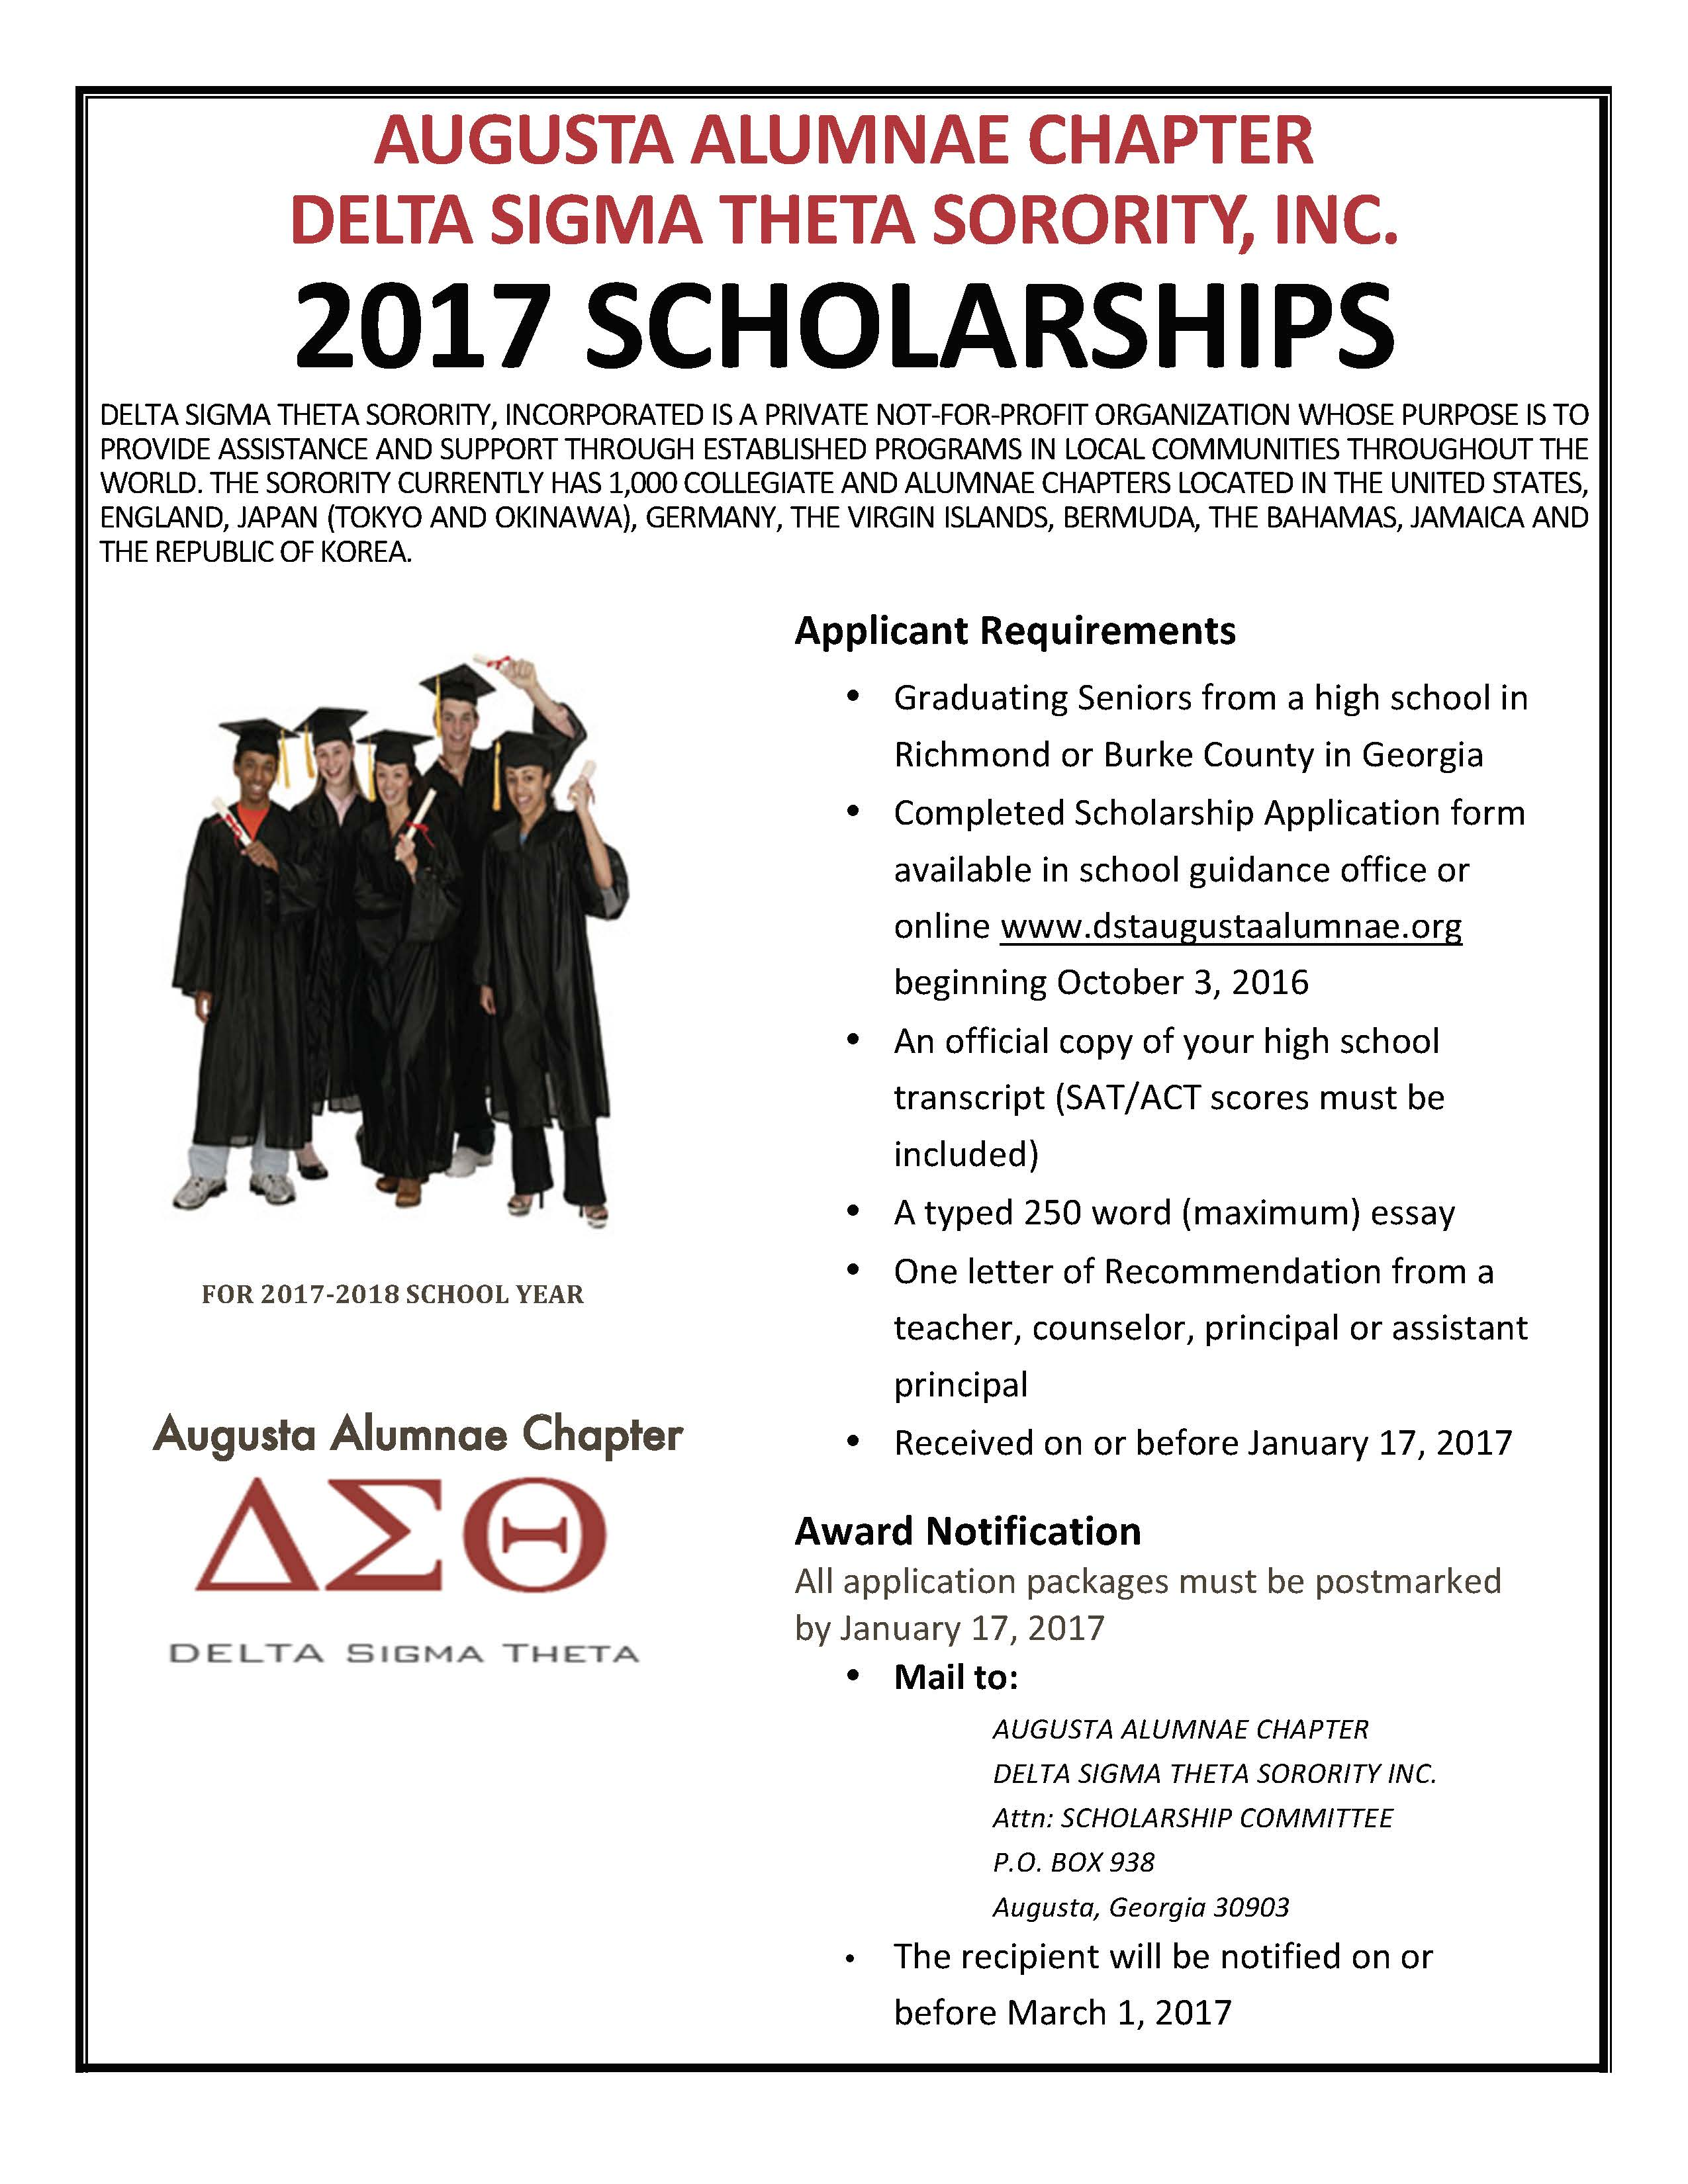 AAC Delta Sigma Theta Scholarship Applications are Available